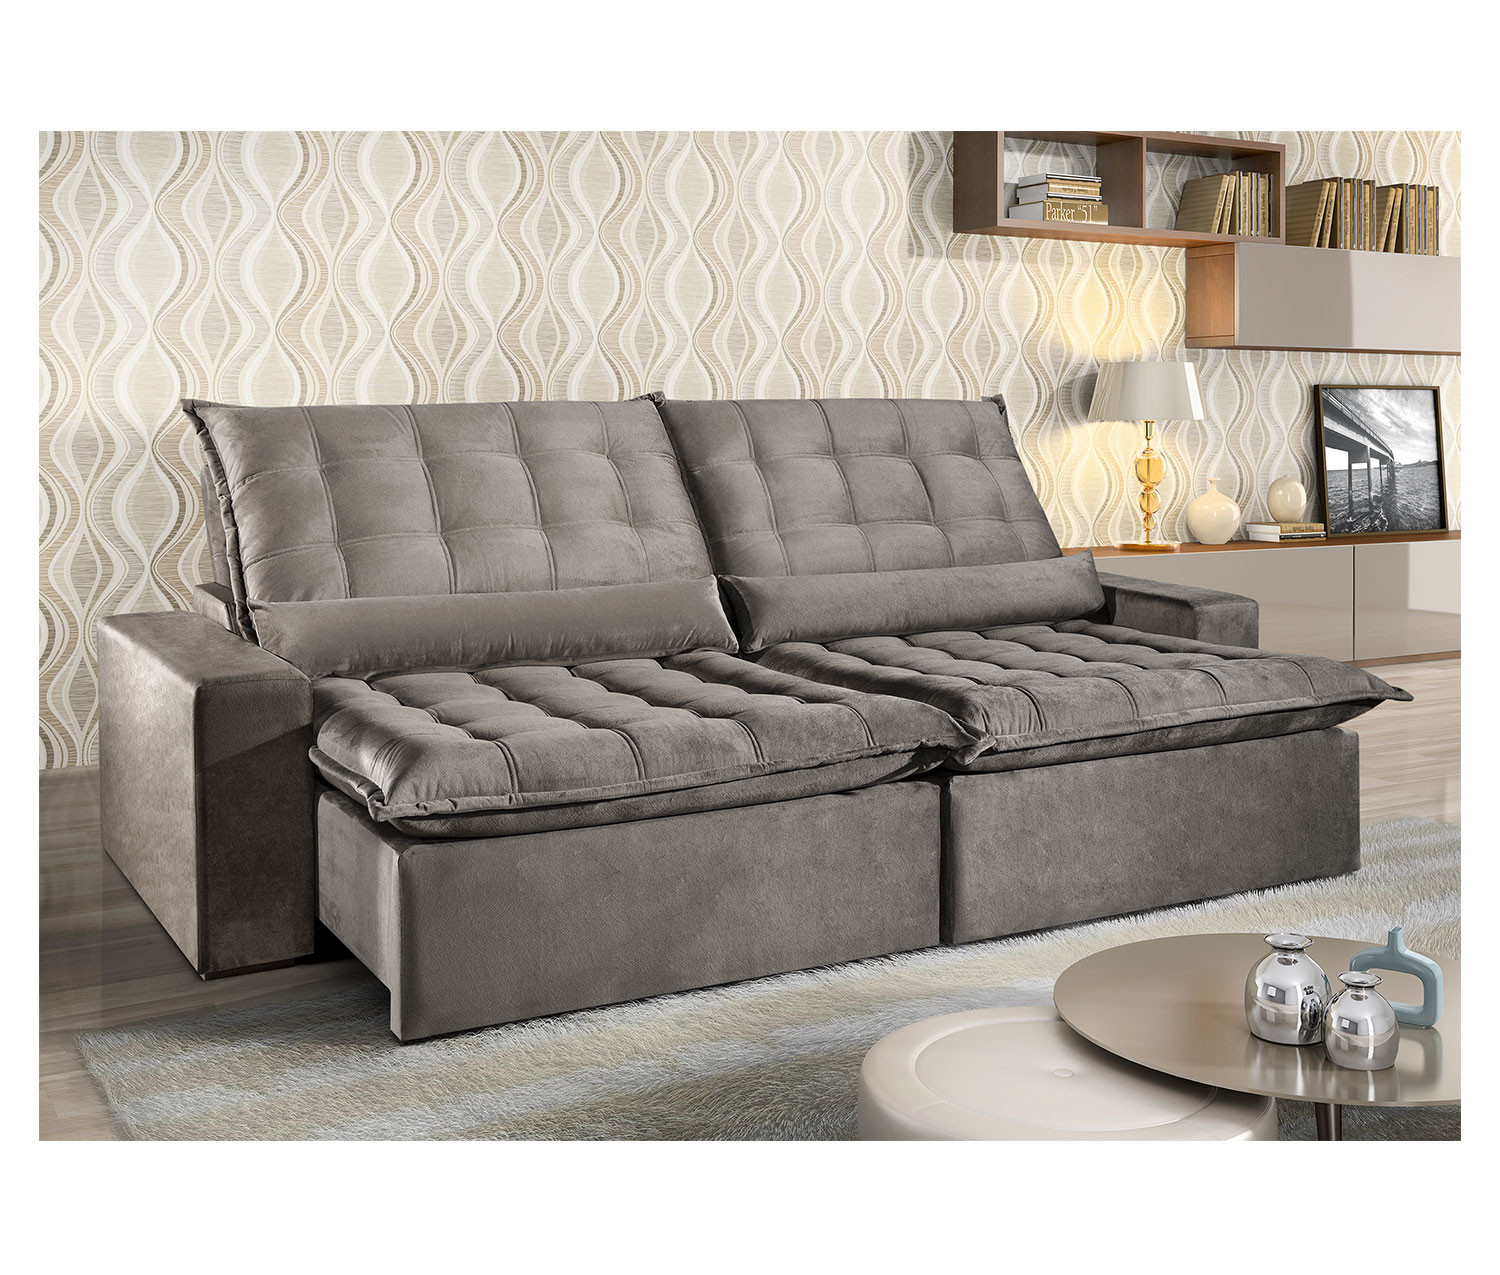 Sofa Retratil Uba Mg Sofa Retratil Reclinavel Istambul 2 10 Mts Até 2 90 Mts Uniart Estofados